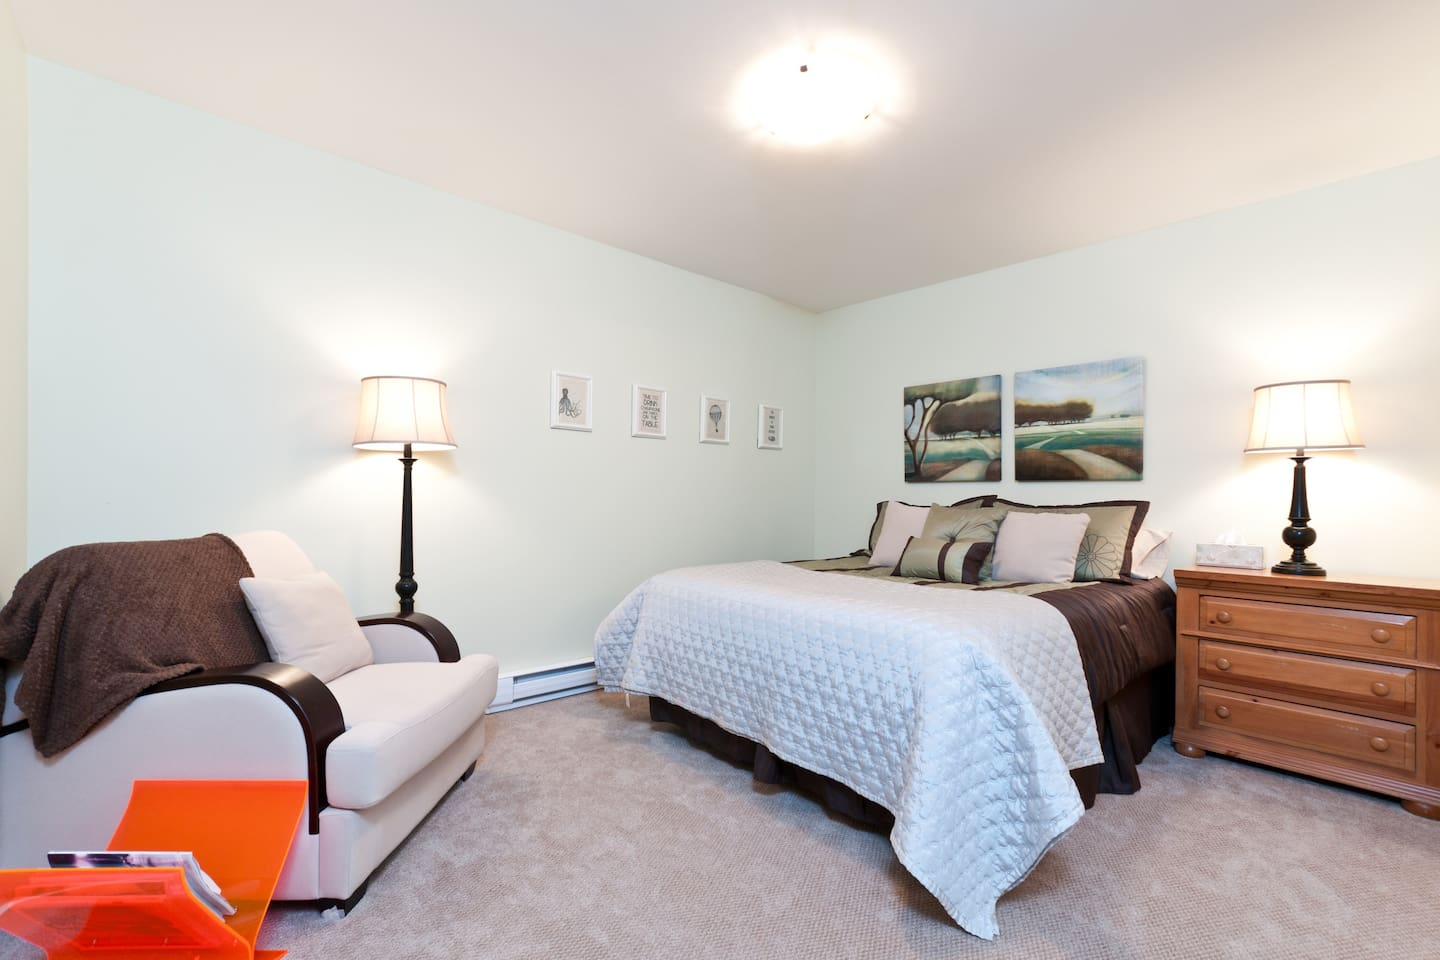 All the comforts of home are here for your stay in this queen bed, private ensuite accomodation